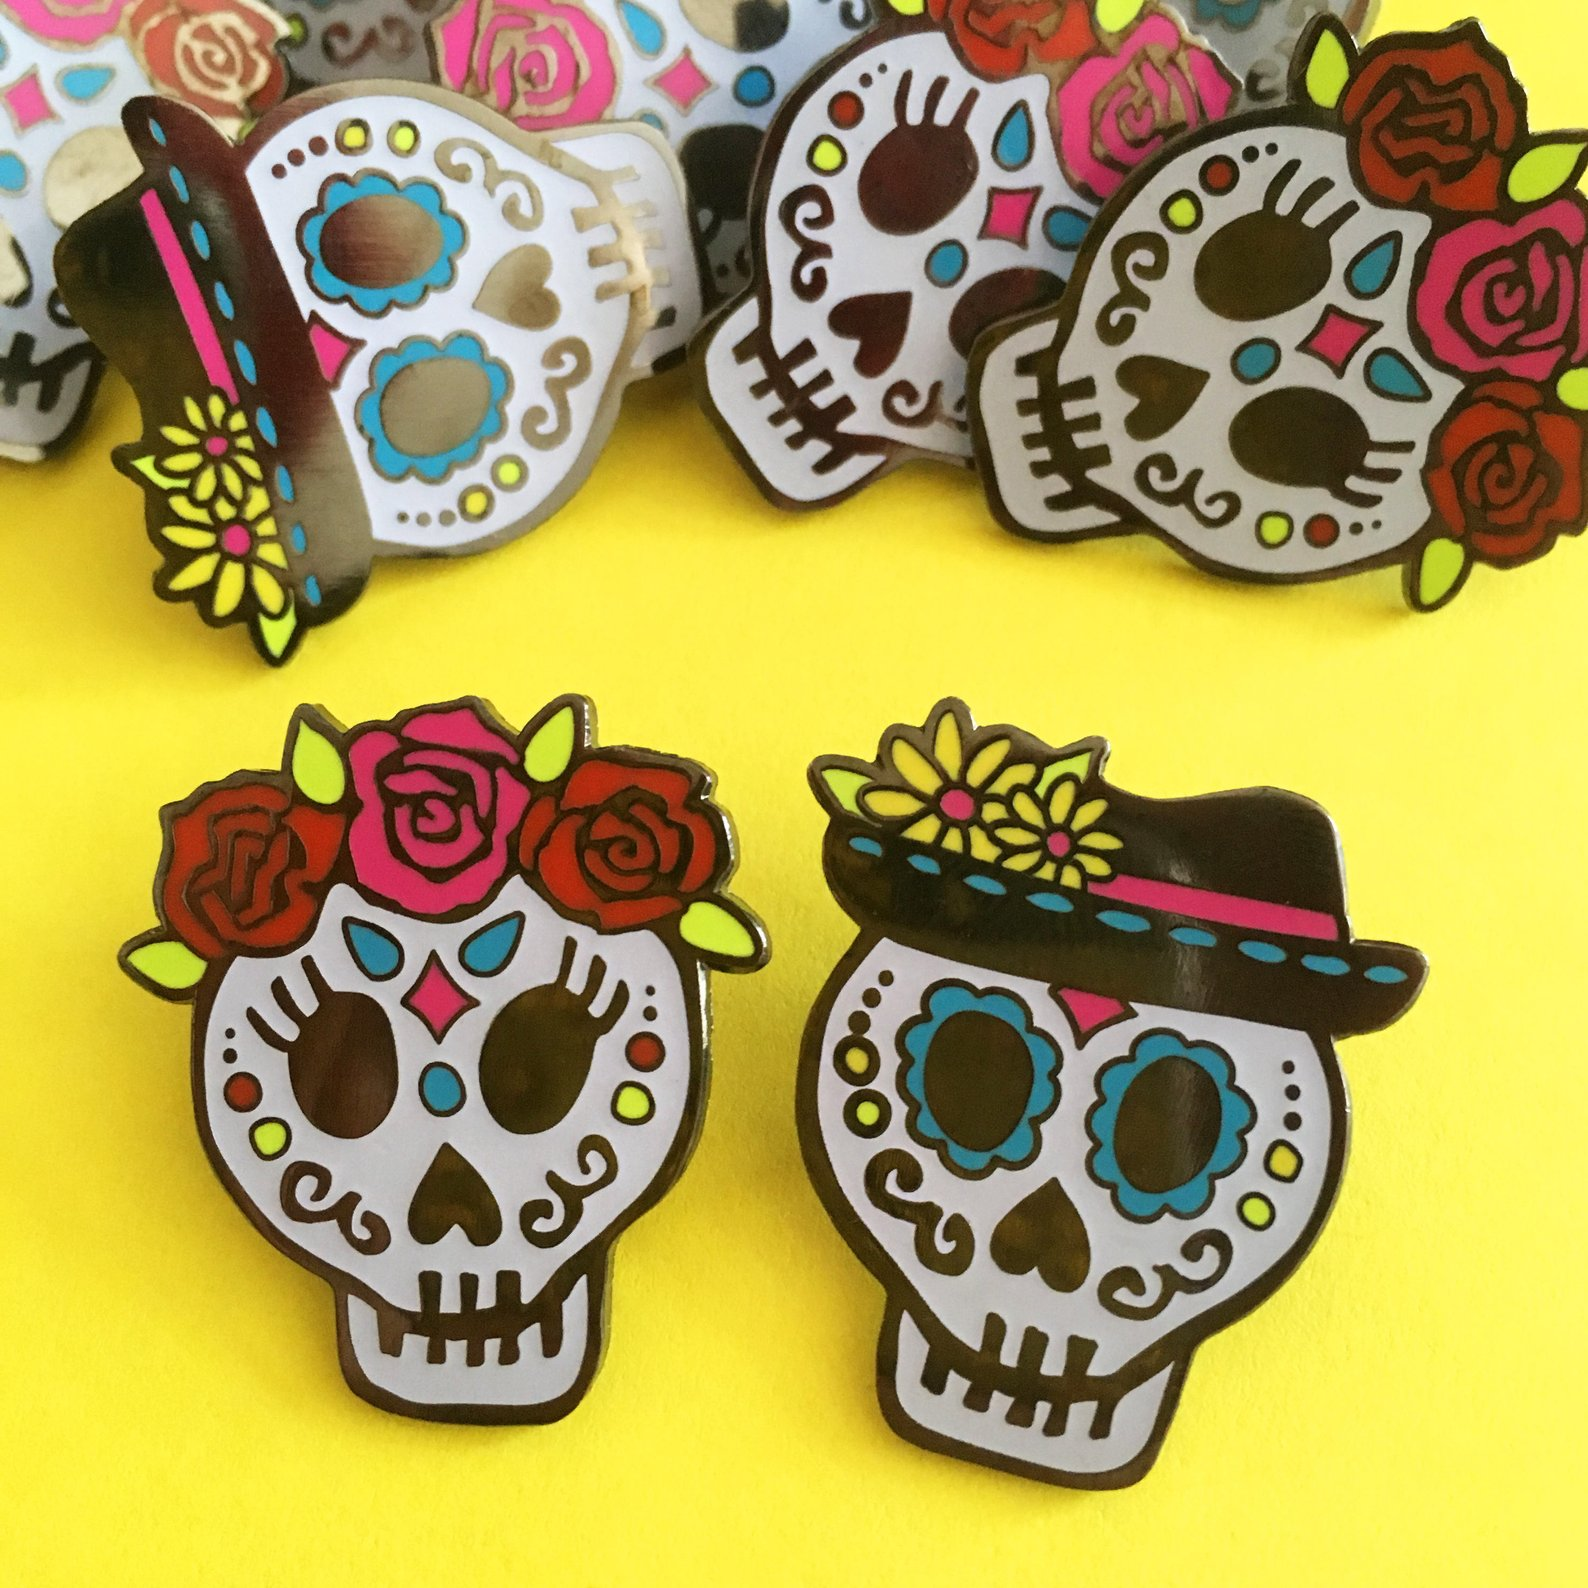 Day of the Dead Sugar Skull Enamel Pin By Woah There Pickle